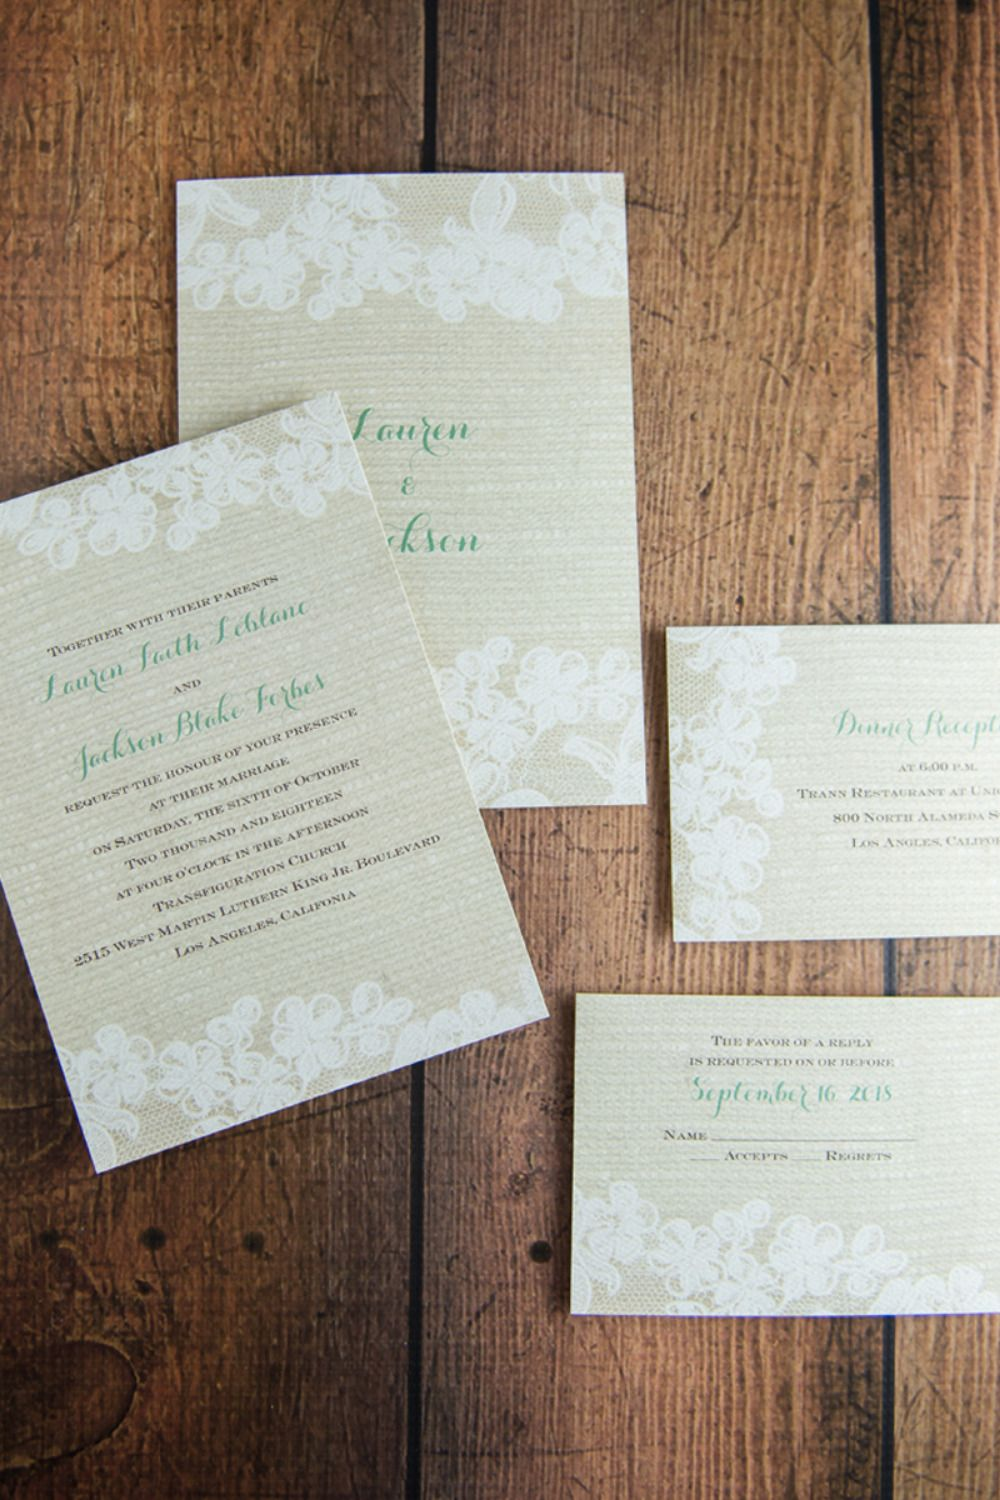 Wedding Invitations Cakes For Cold Weather Weddings Wedding Invitations Fall Wedding Invitations Invitations